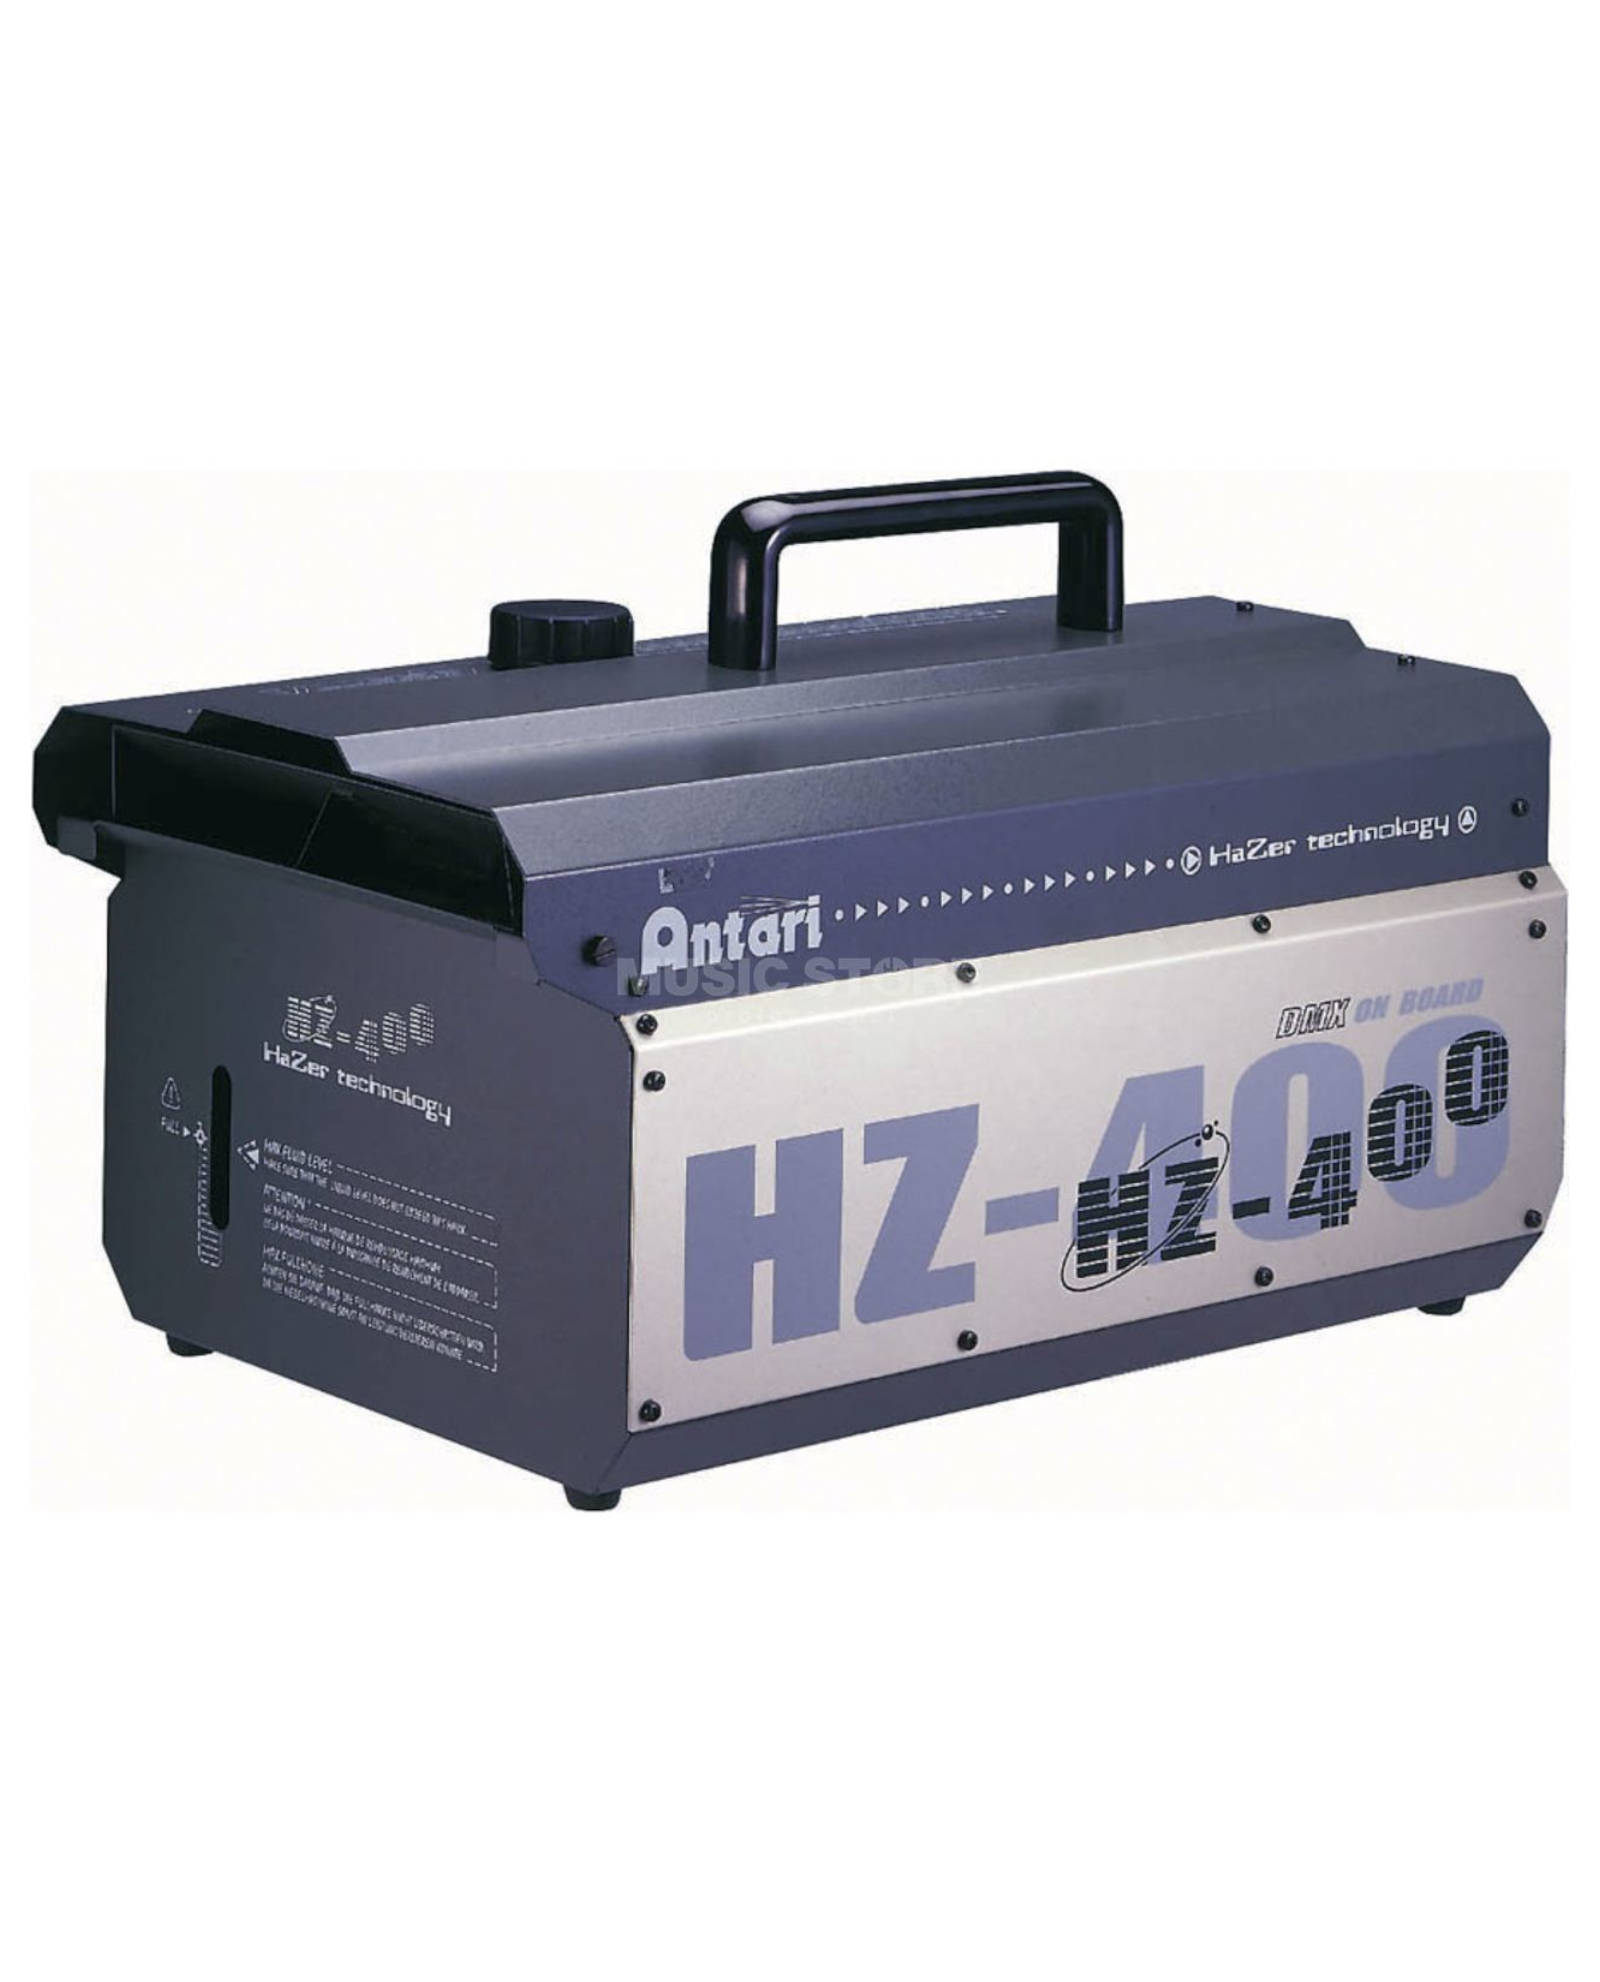 Antari Haze Machine Hz400 2